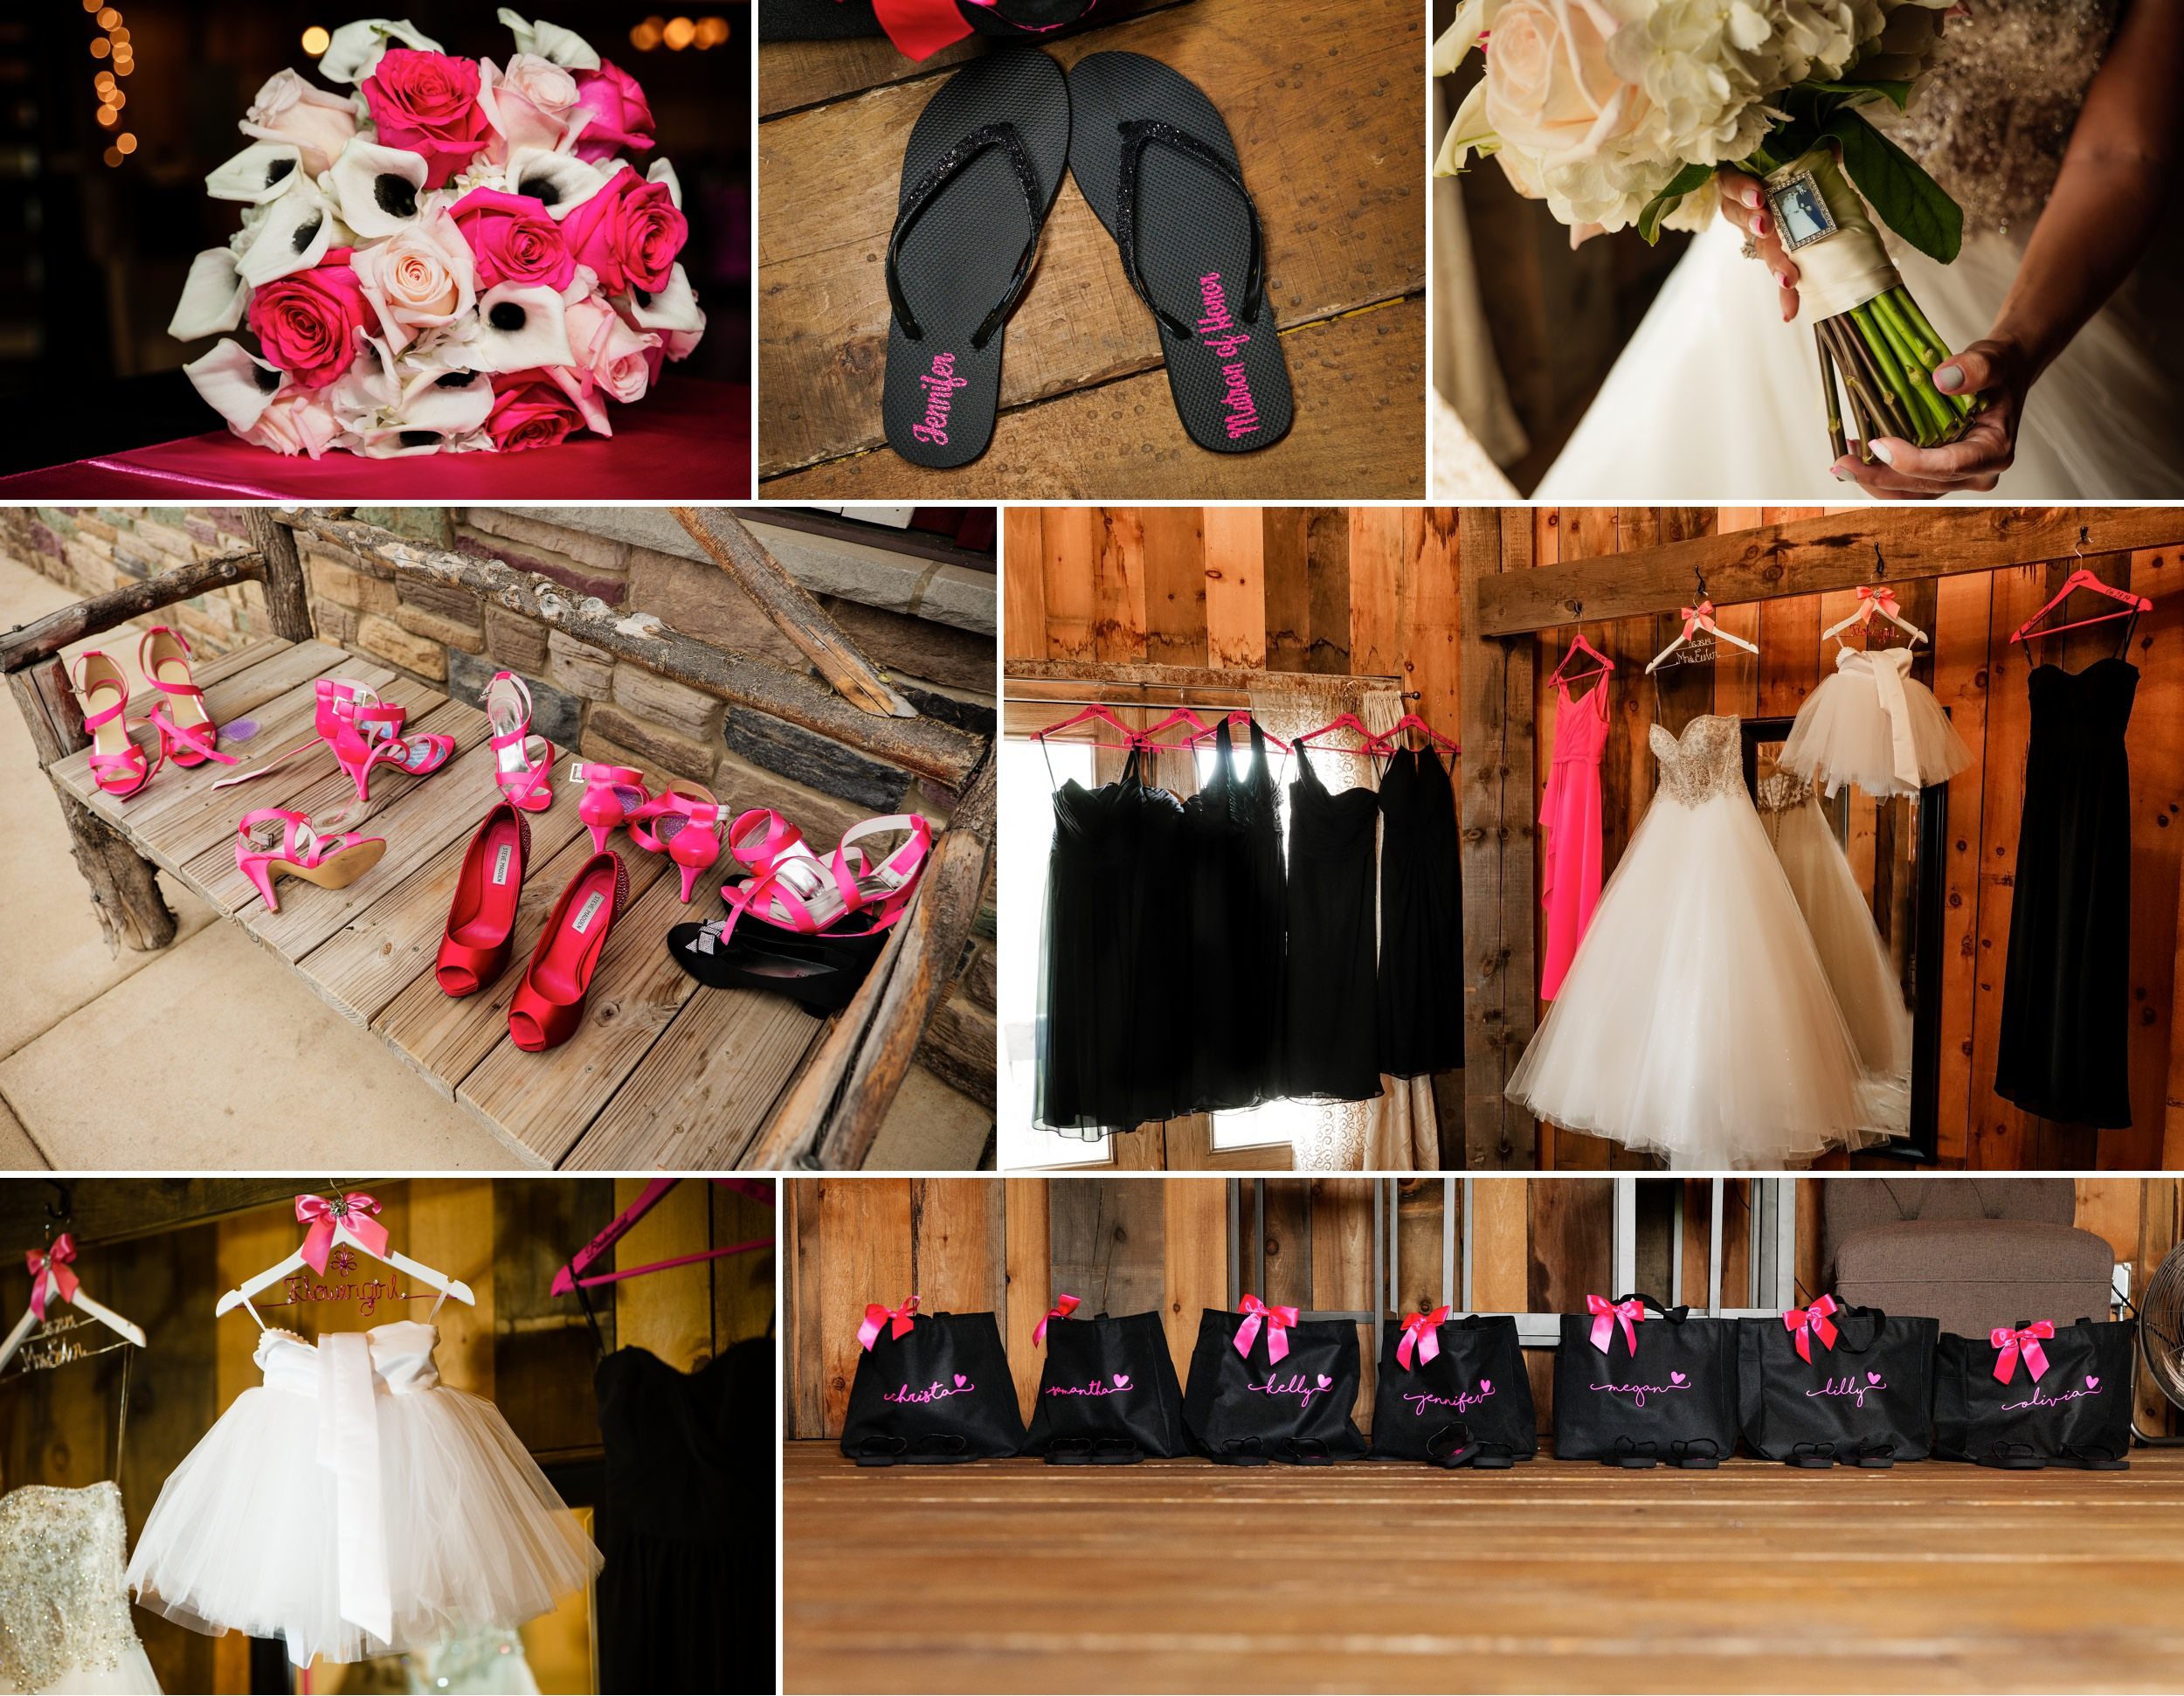 Bridal details at County Line Orchard.